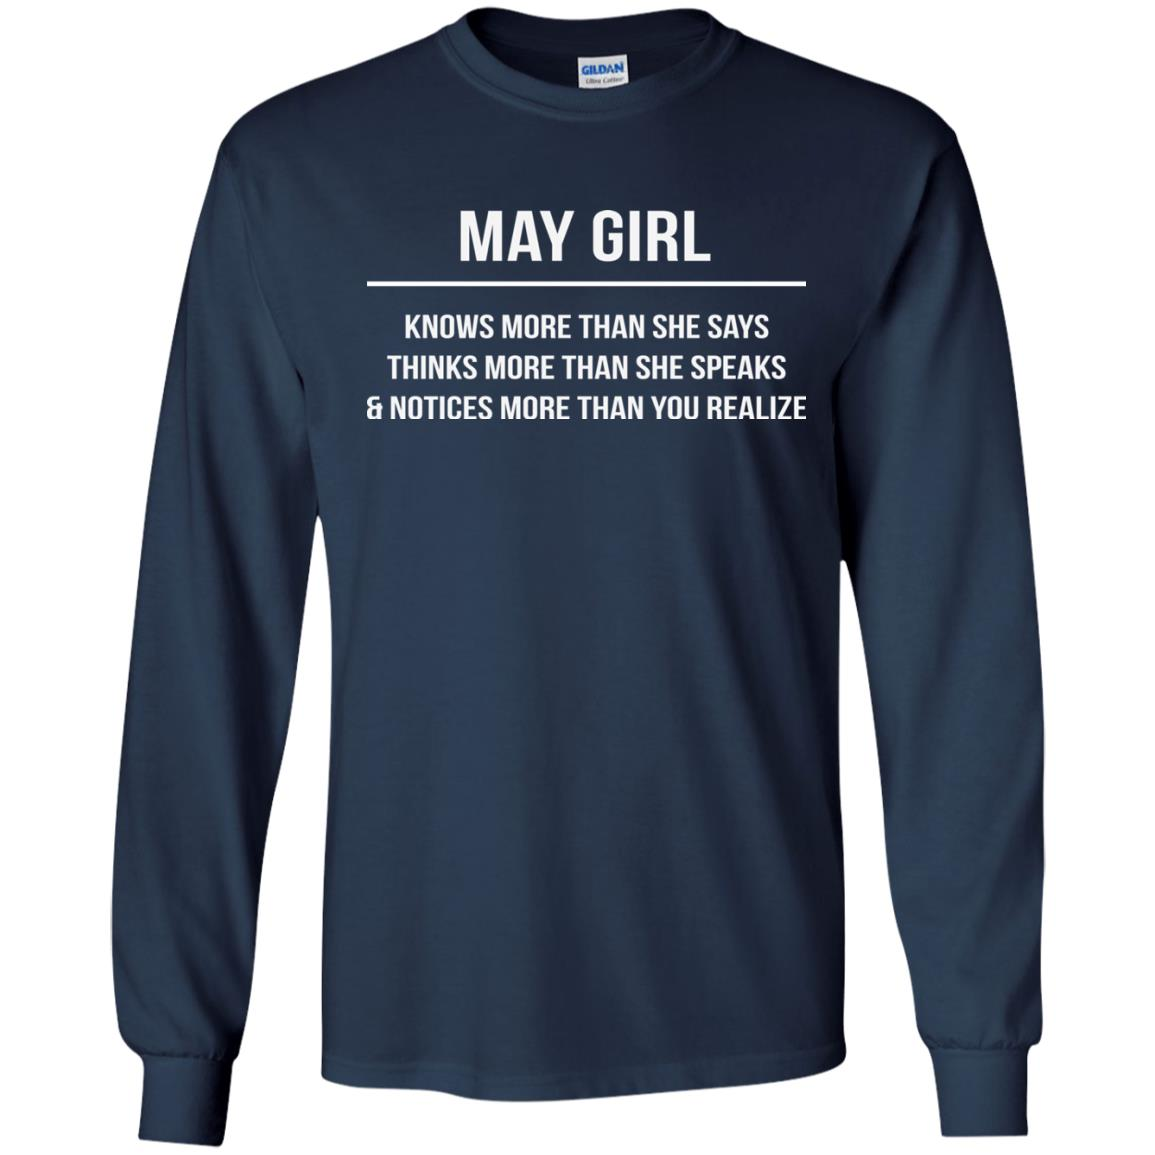 image 2580 - May girl knows more than she says shirt, tank top, hoodie